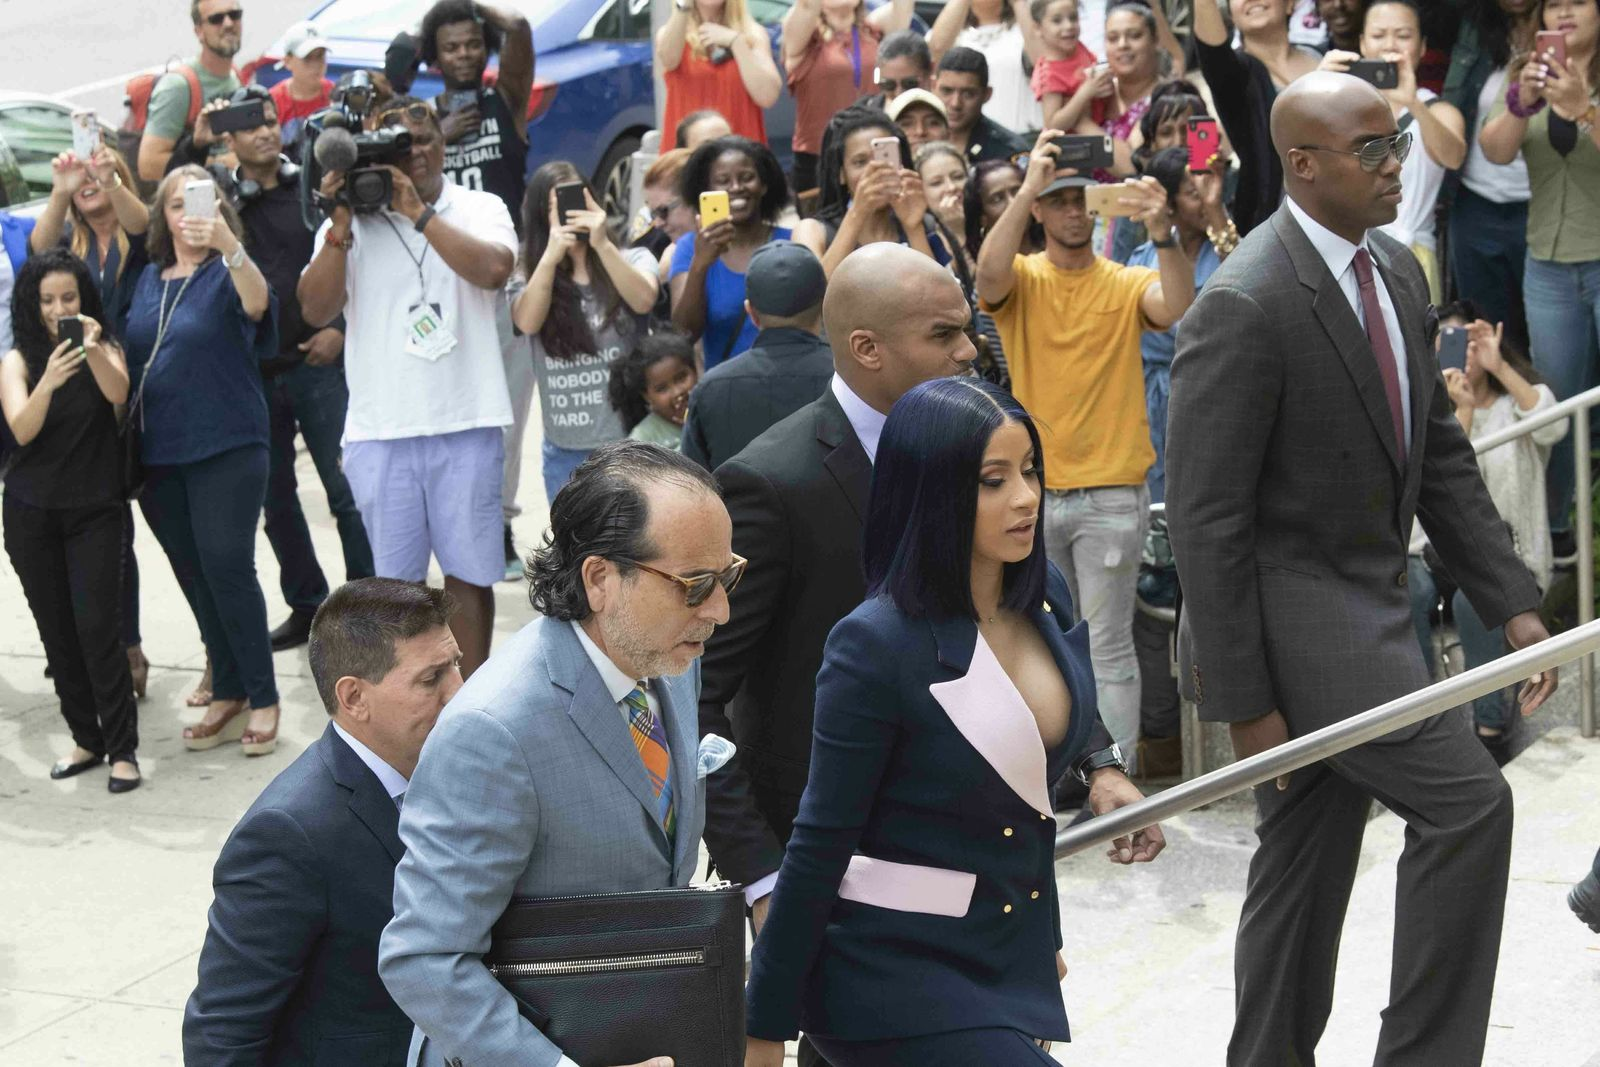 Fans take photos as Grammy-winning rapper Cardi B arrives for a hearing at Queens County Criminal Court, Tuesday, June 25, 2019, in New York. (AP Photo/Mary Altaffer)